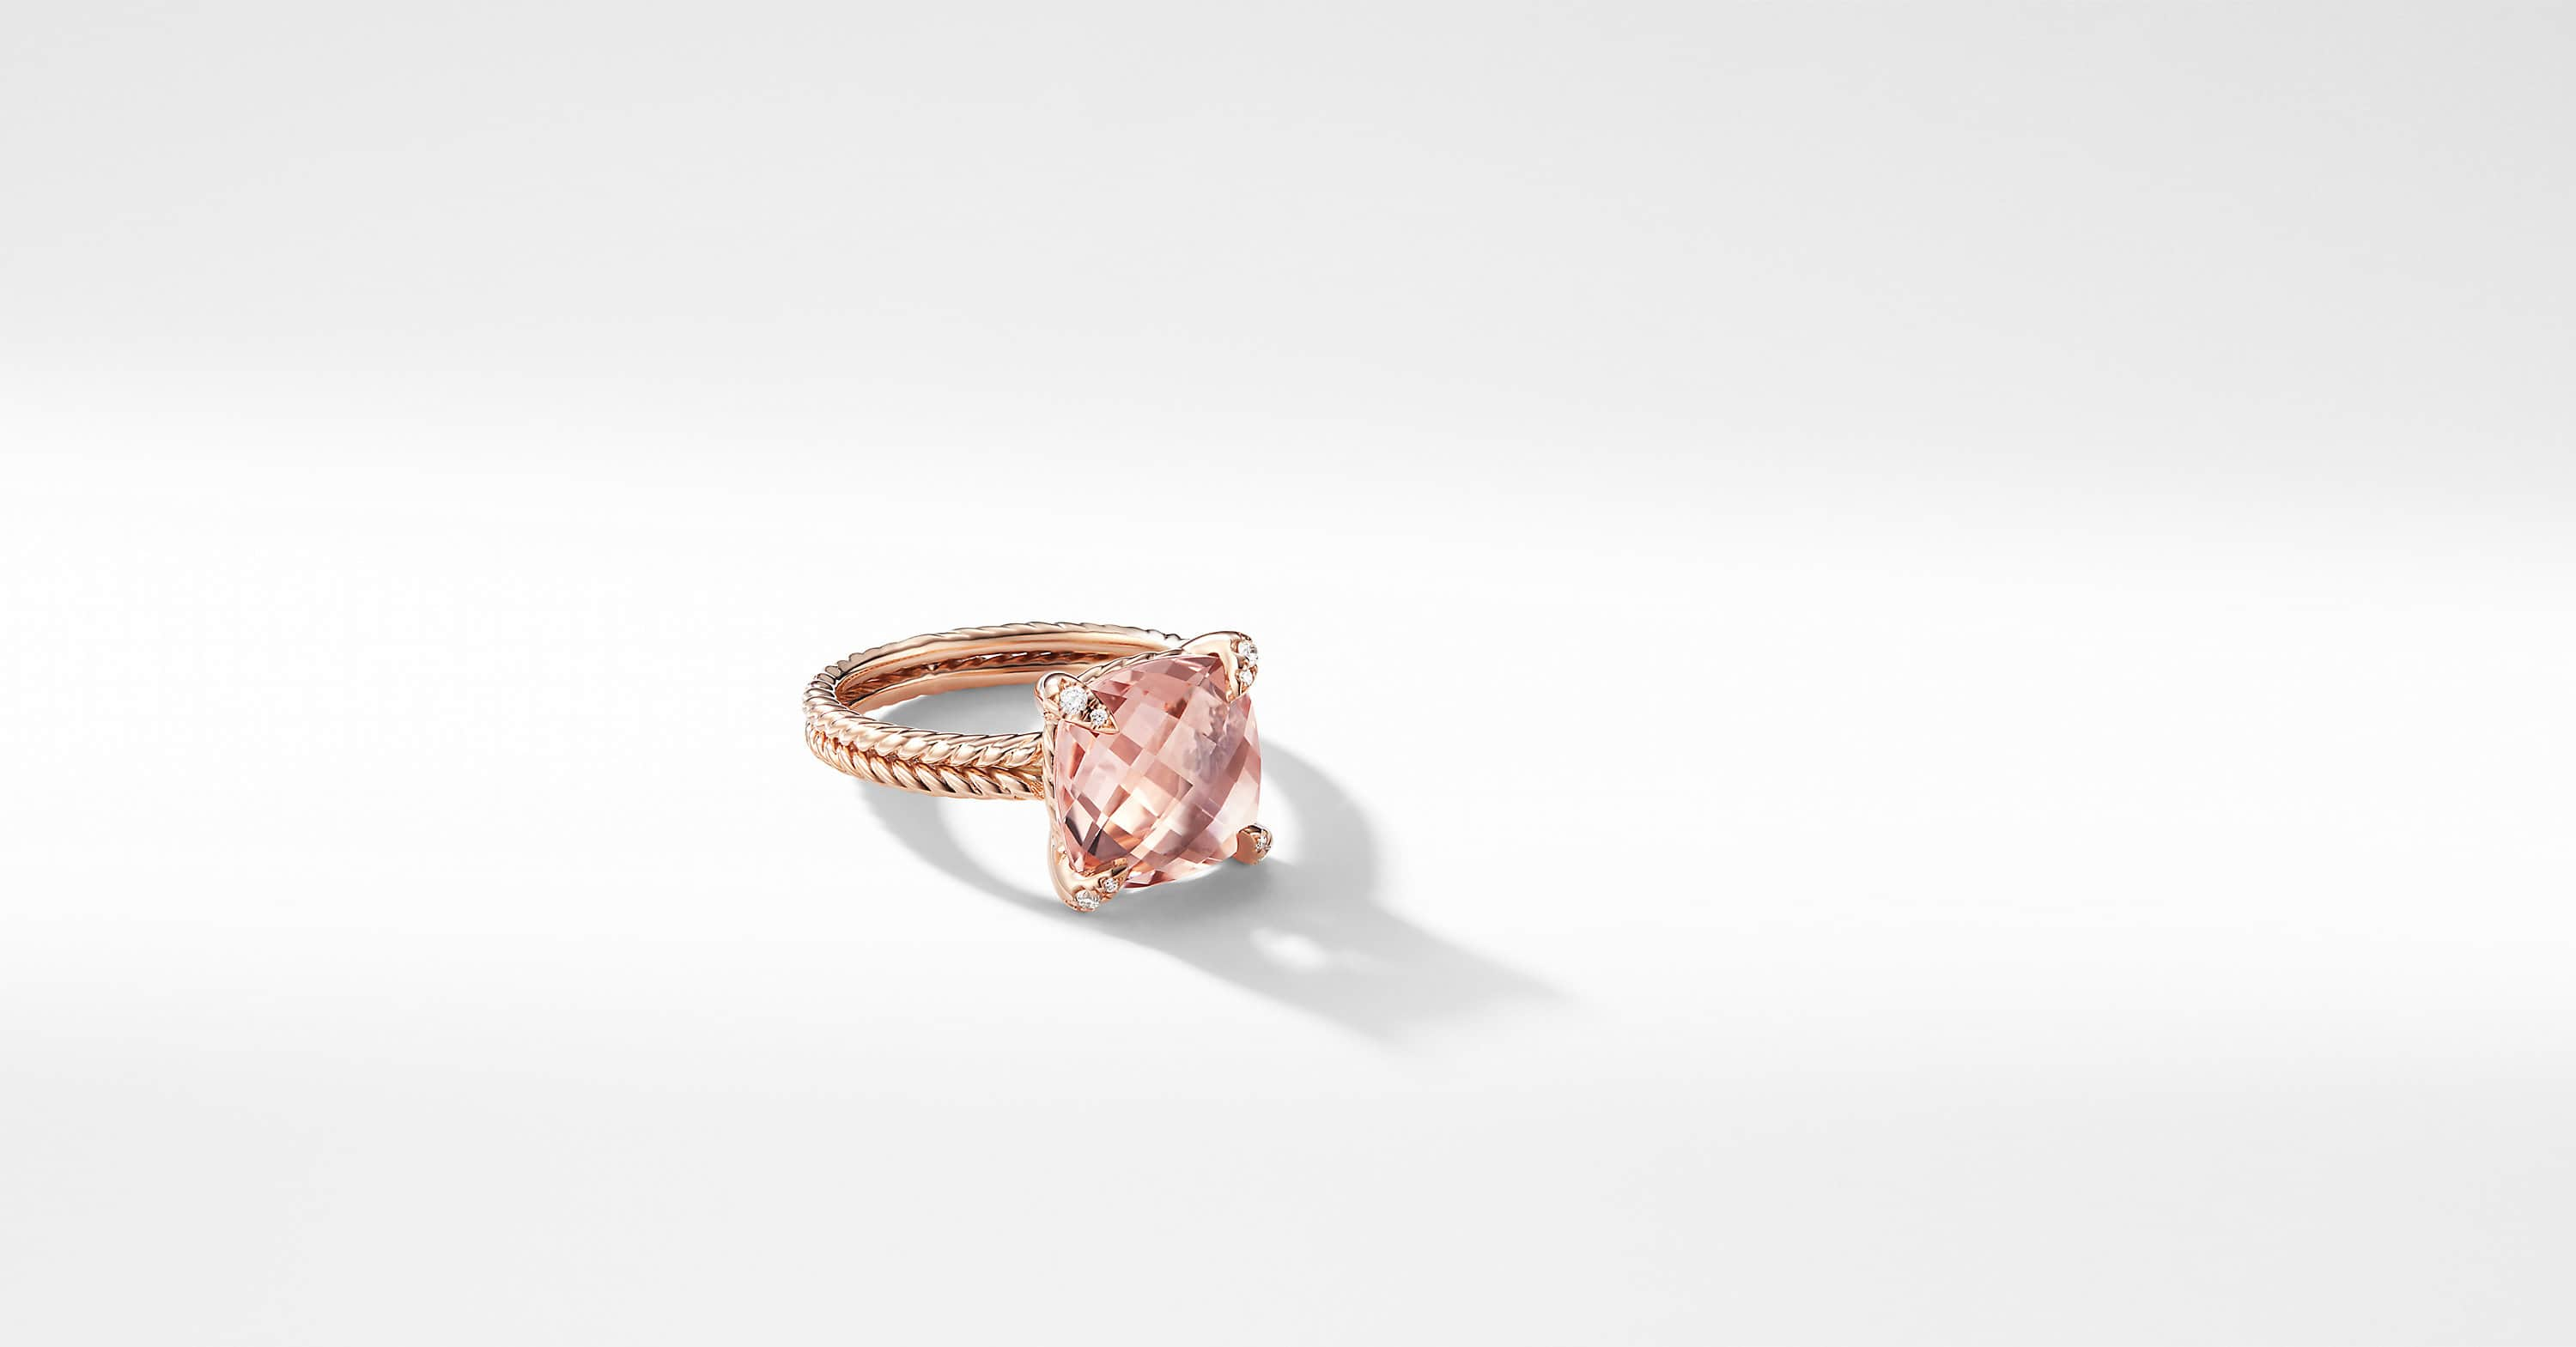 Chatelaine Ring with Diamonds in 18K Rose Gold, 11mm